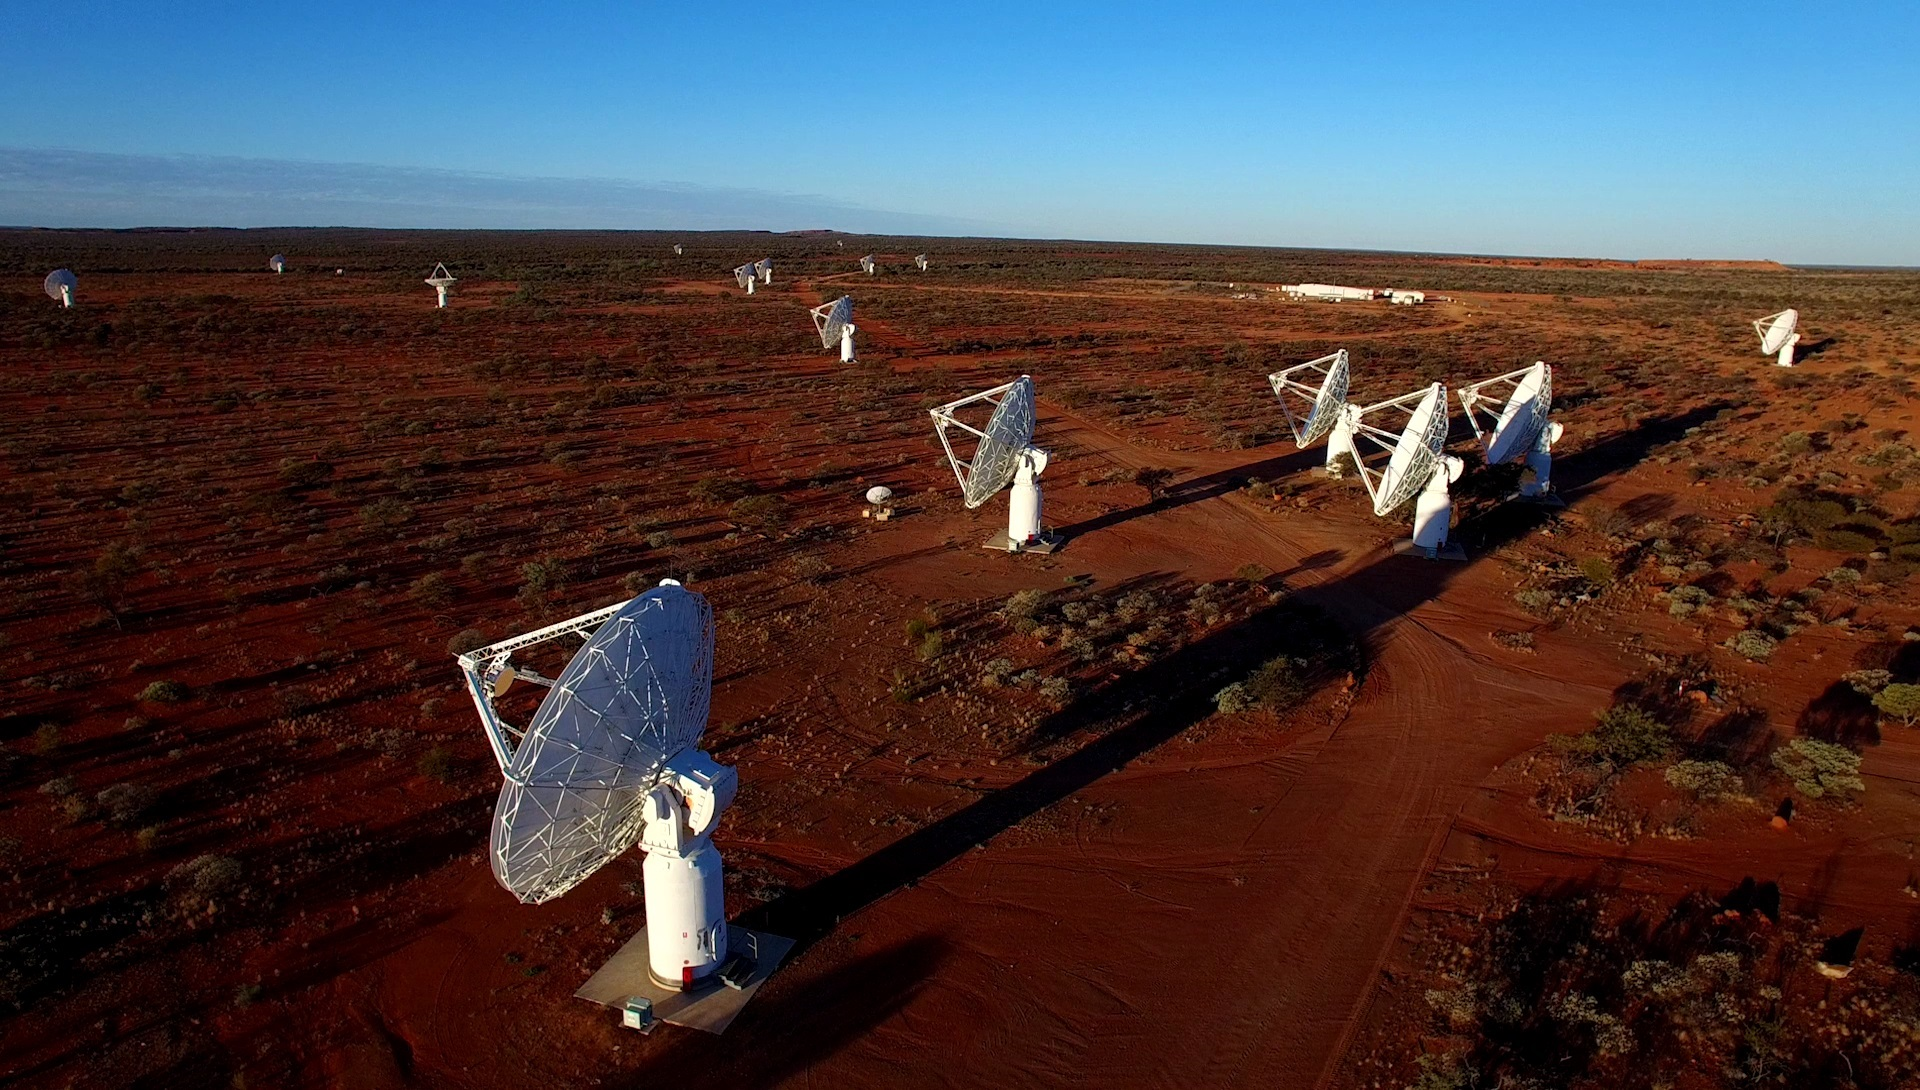 CSIRO's new ASKAP antennas at the Murchison Radio-astronomy Observatory. Credit: CSIRO